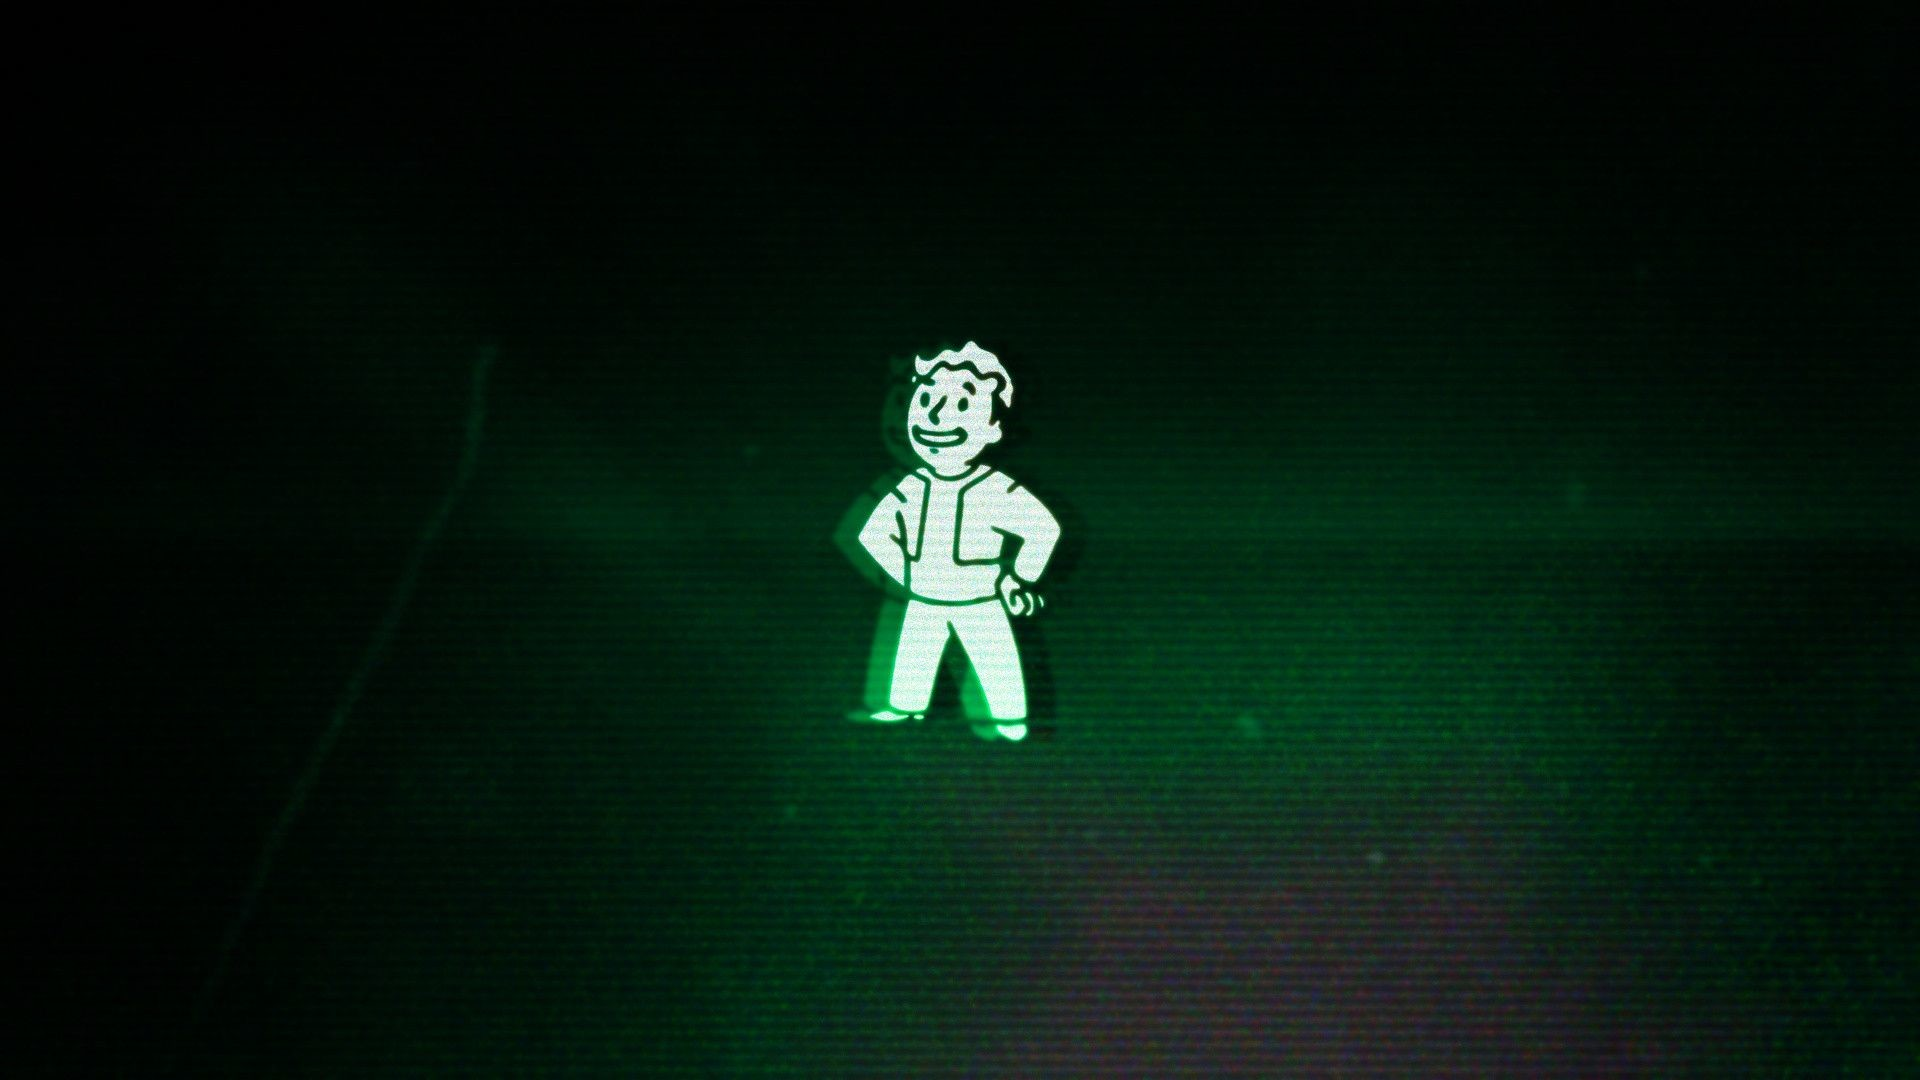 1920x1080 fallout pip boy background - Pesquisa Google